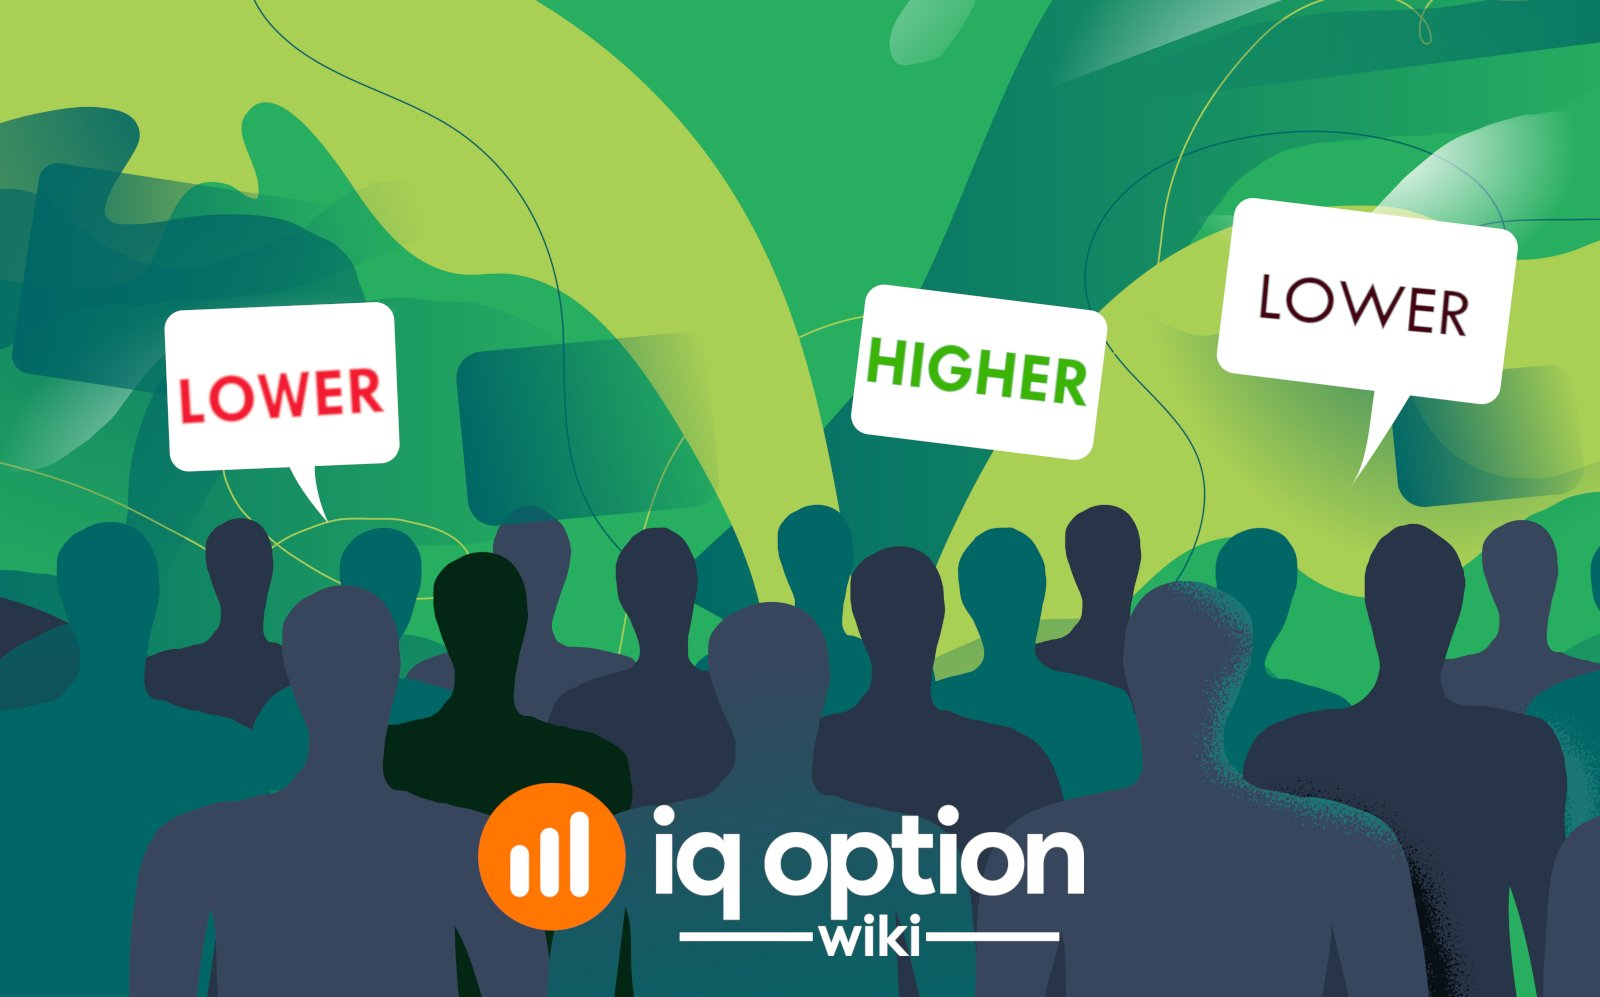 traders sentiment at iq option